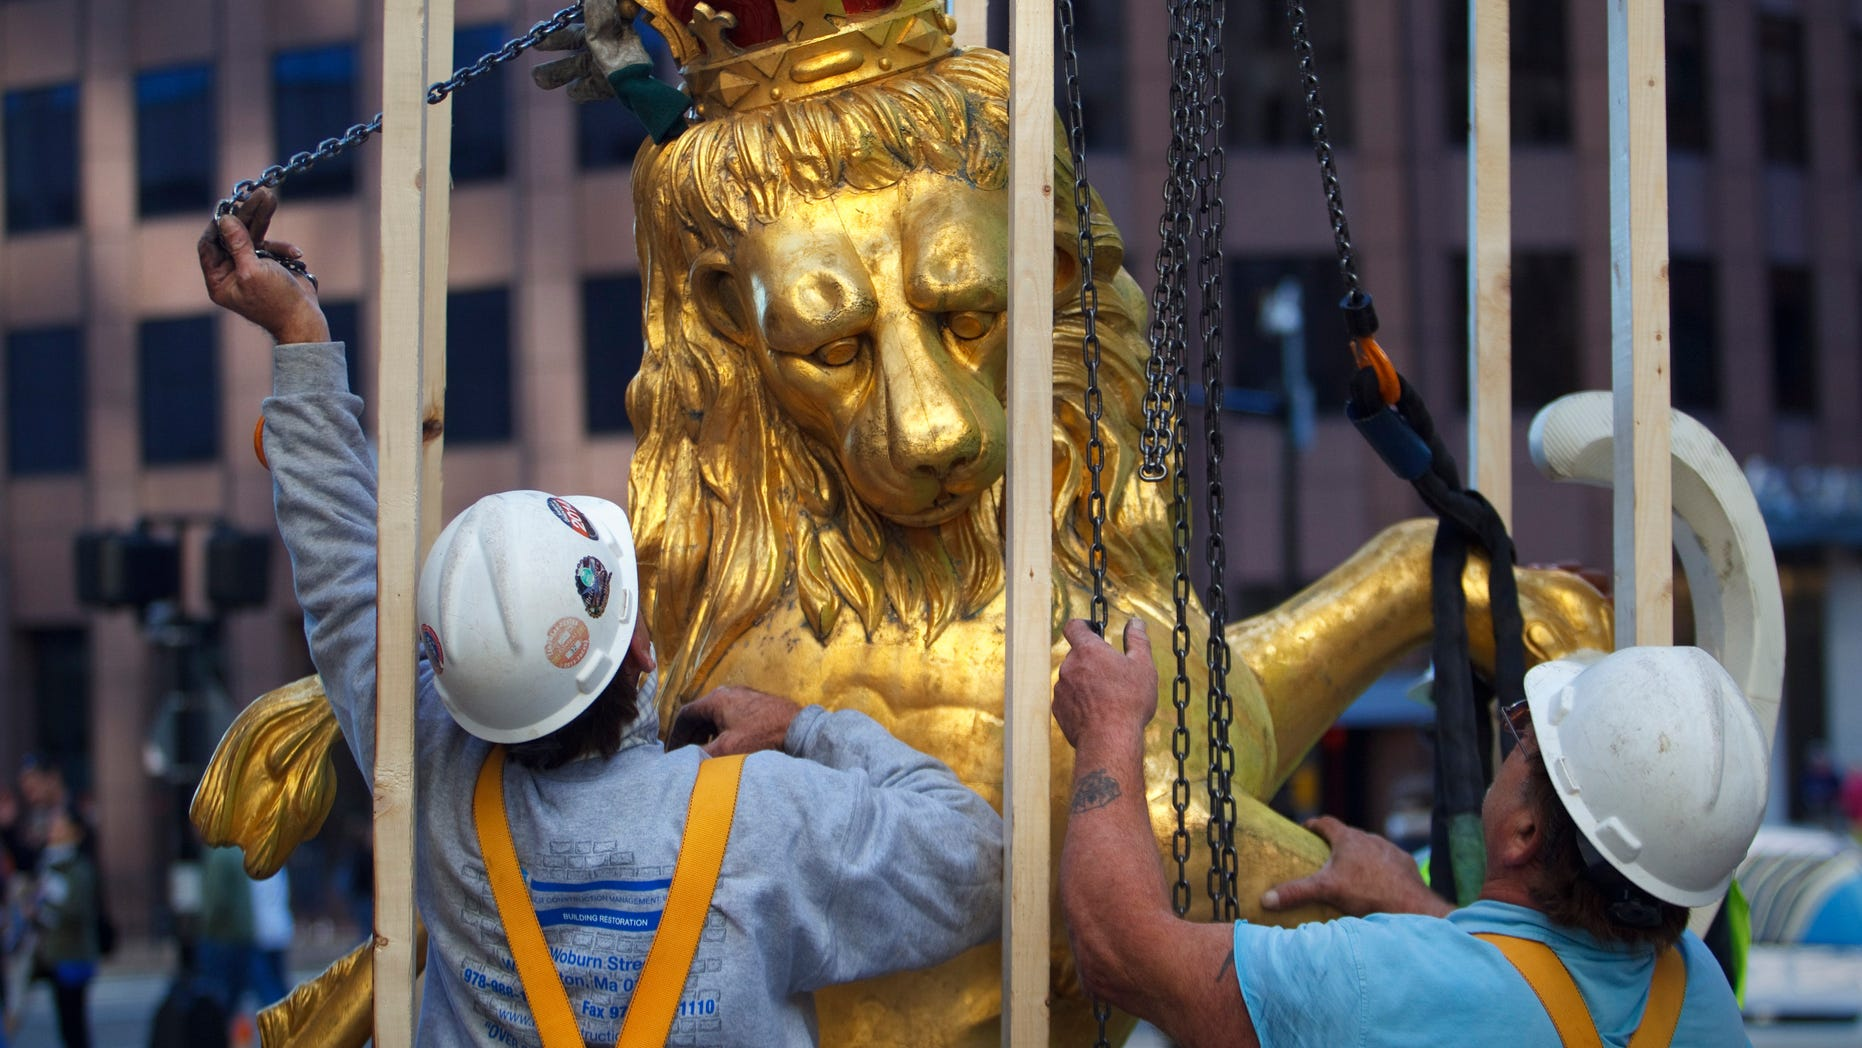 Sept. 14, 2014: A lion statue is removed from atop the Old State House on Washington Street in Boston. (AP/The Boston Globe, Dina Rudick)